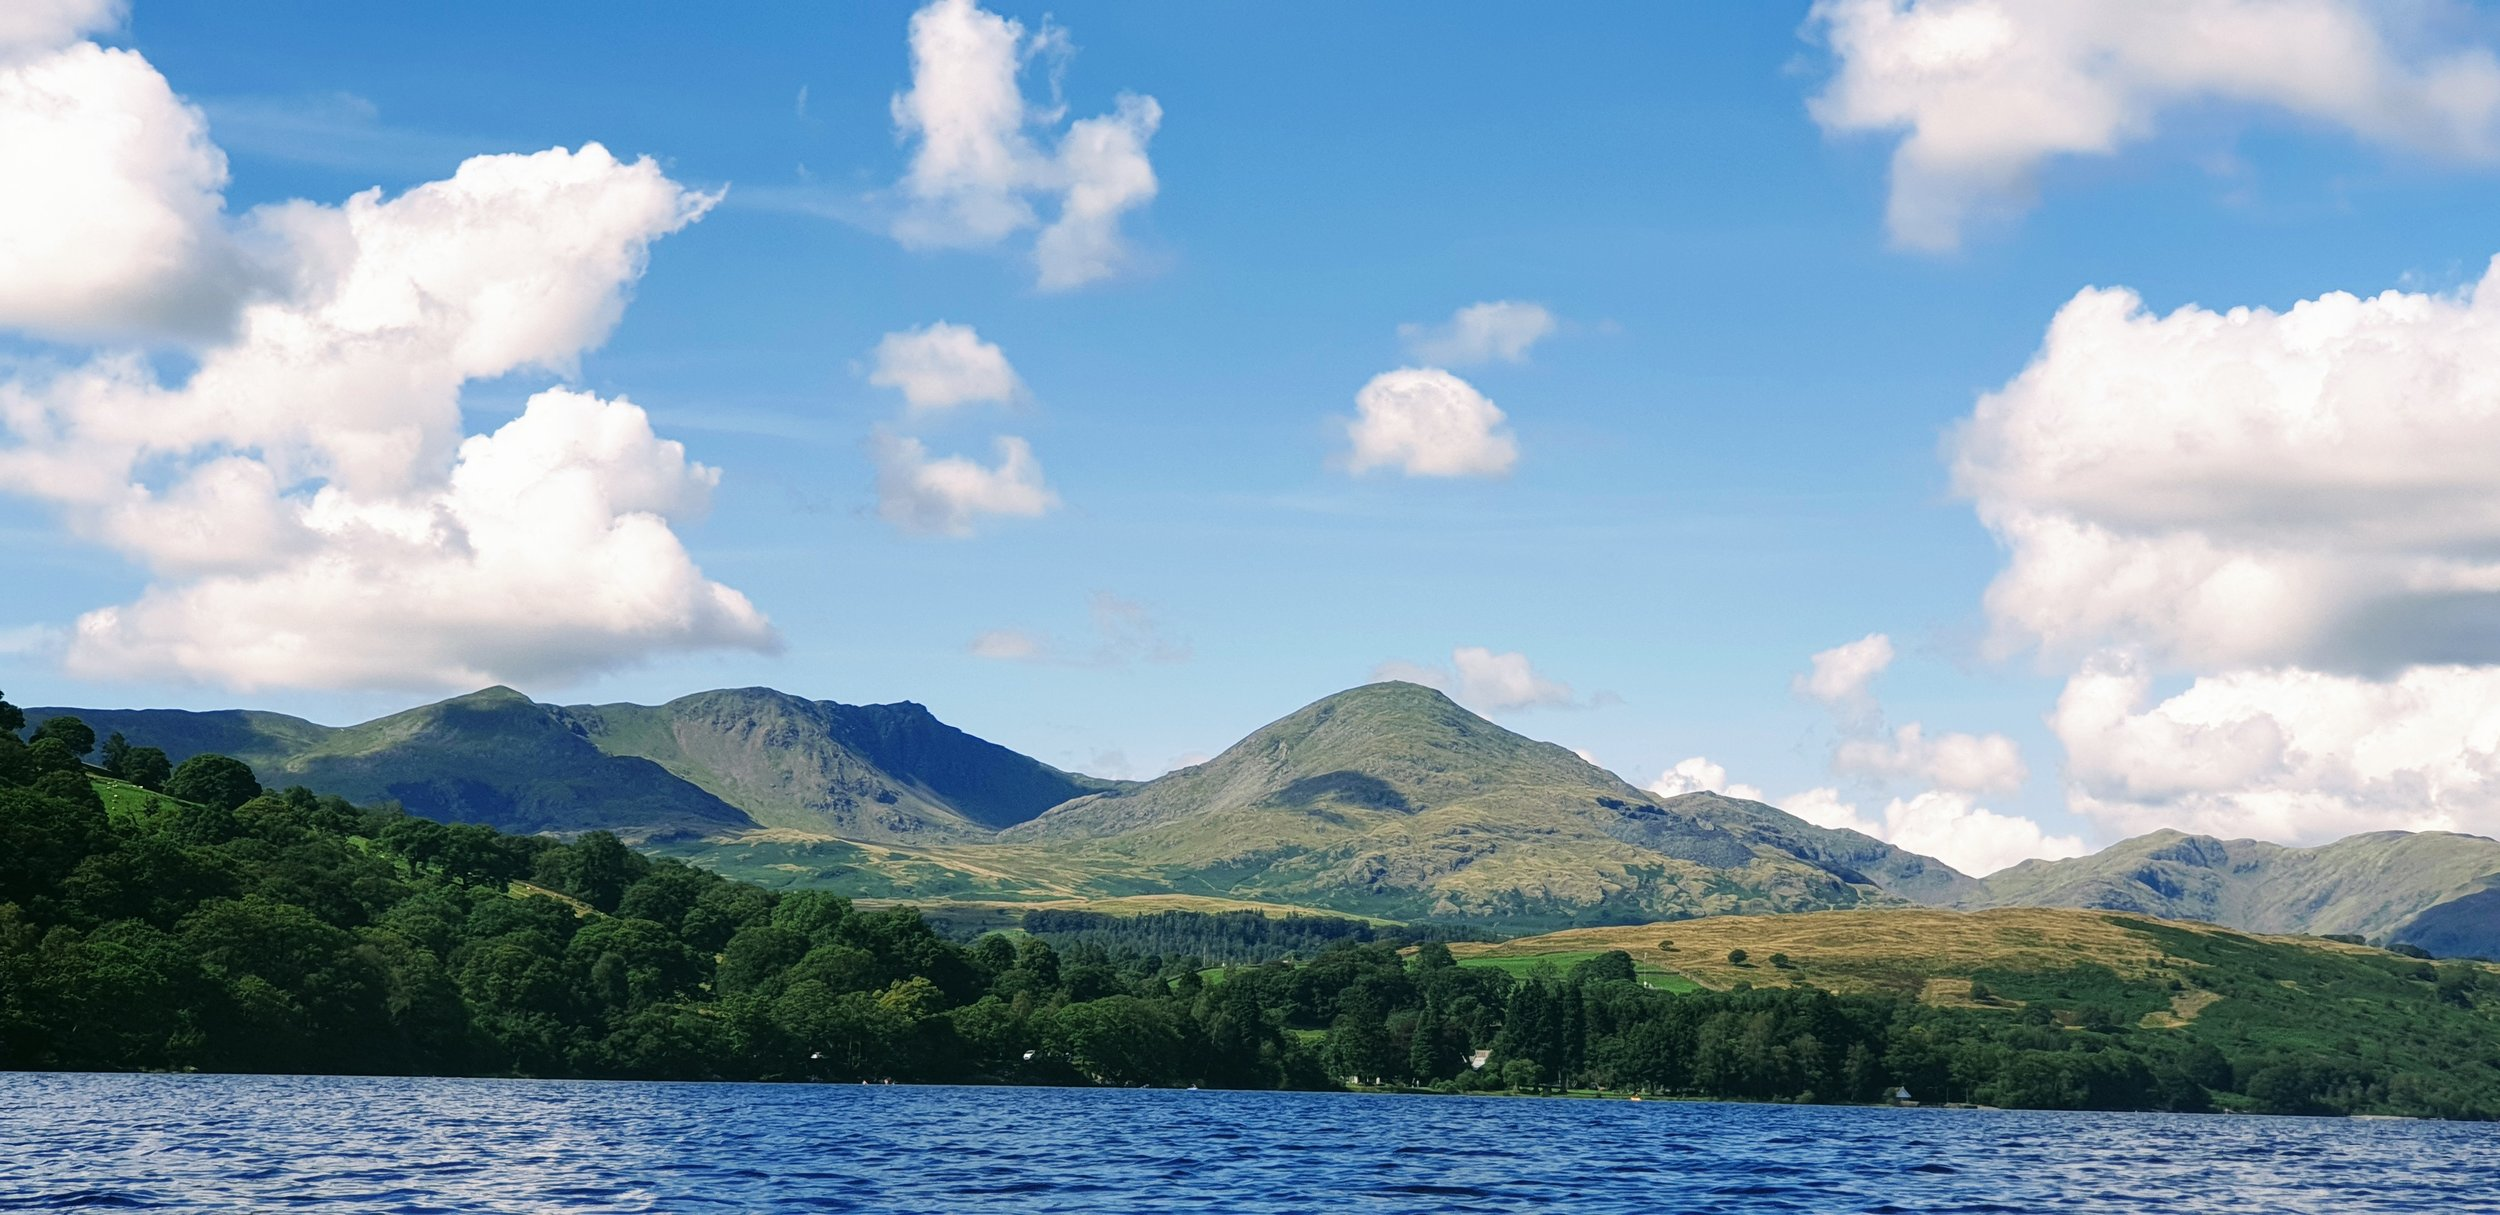 View from kayak on Coniston Water, Cumbria. Photo © 2019 by Tim Warnes